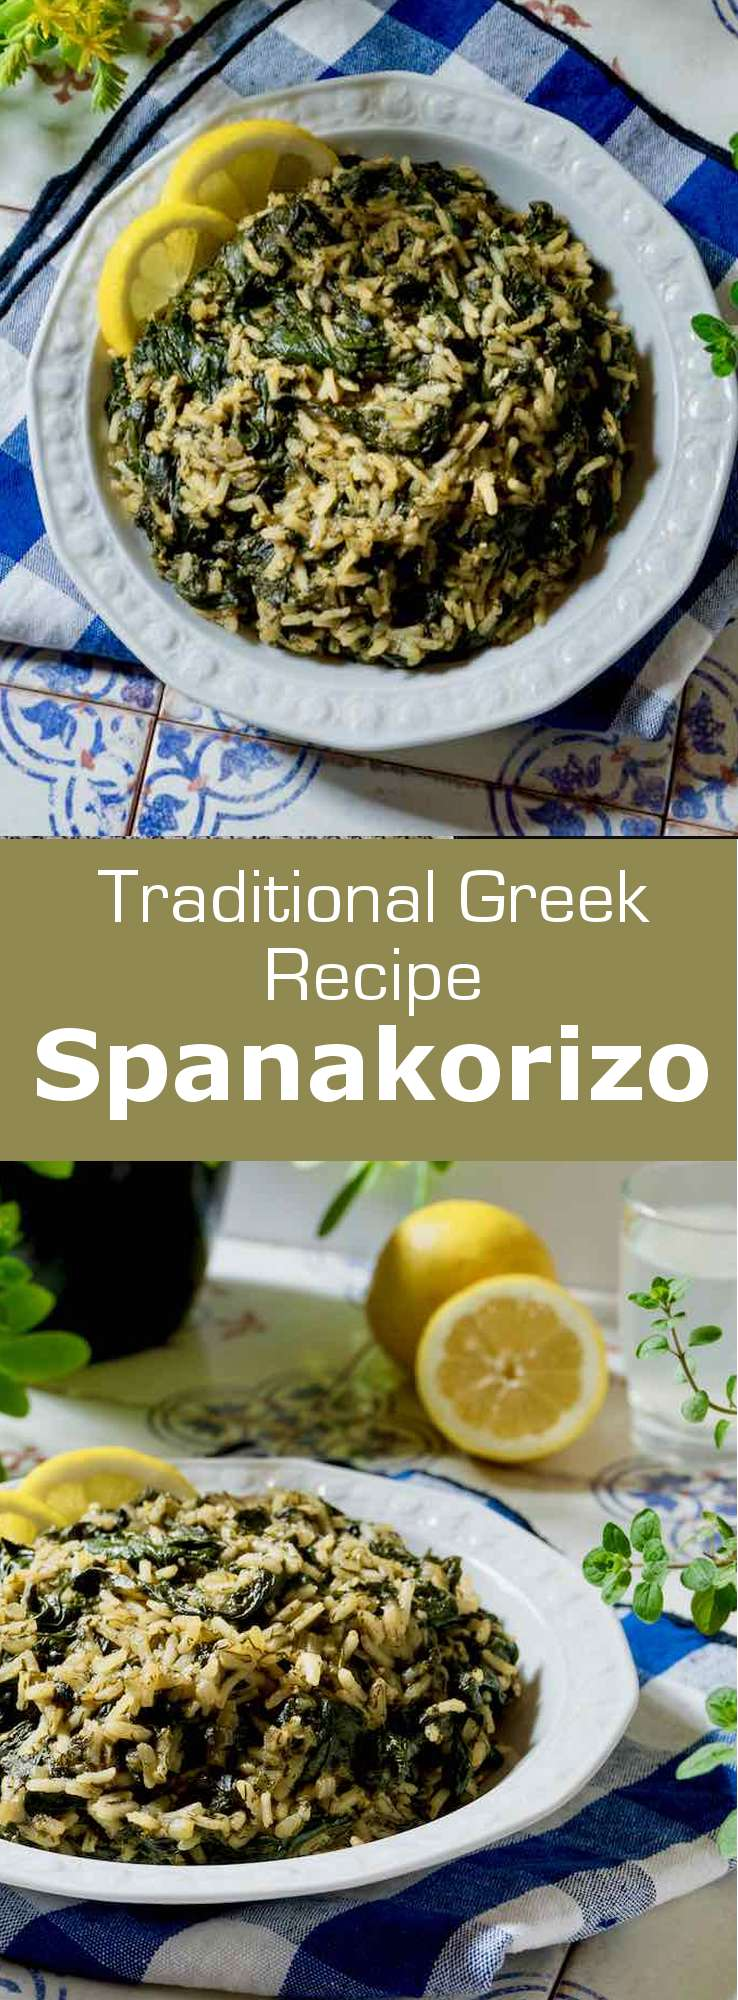 Spanakorizo ​​(σπανακόρυζο) is a popular Greek vegetarian dish prepared with spinach and rice. It is the Greek version of rice pilaf. #Greece #GreekCuisine #GreekFood #GreekRecipe #MediterraneanCuisine #WorldCuisine #196flavors